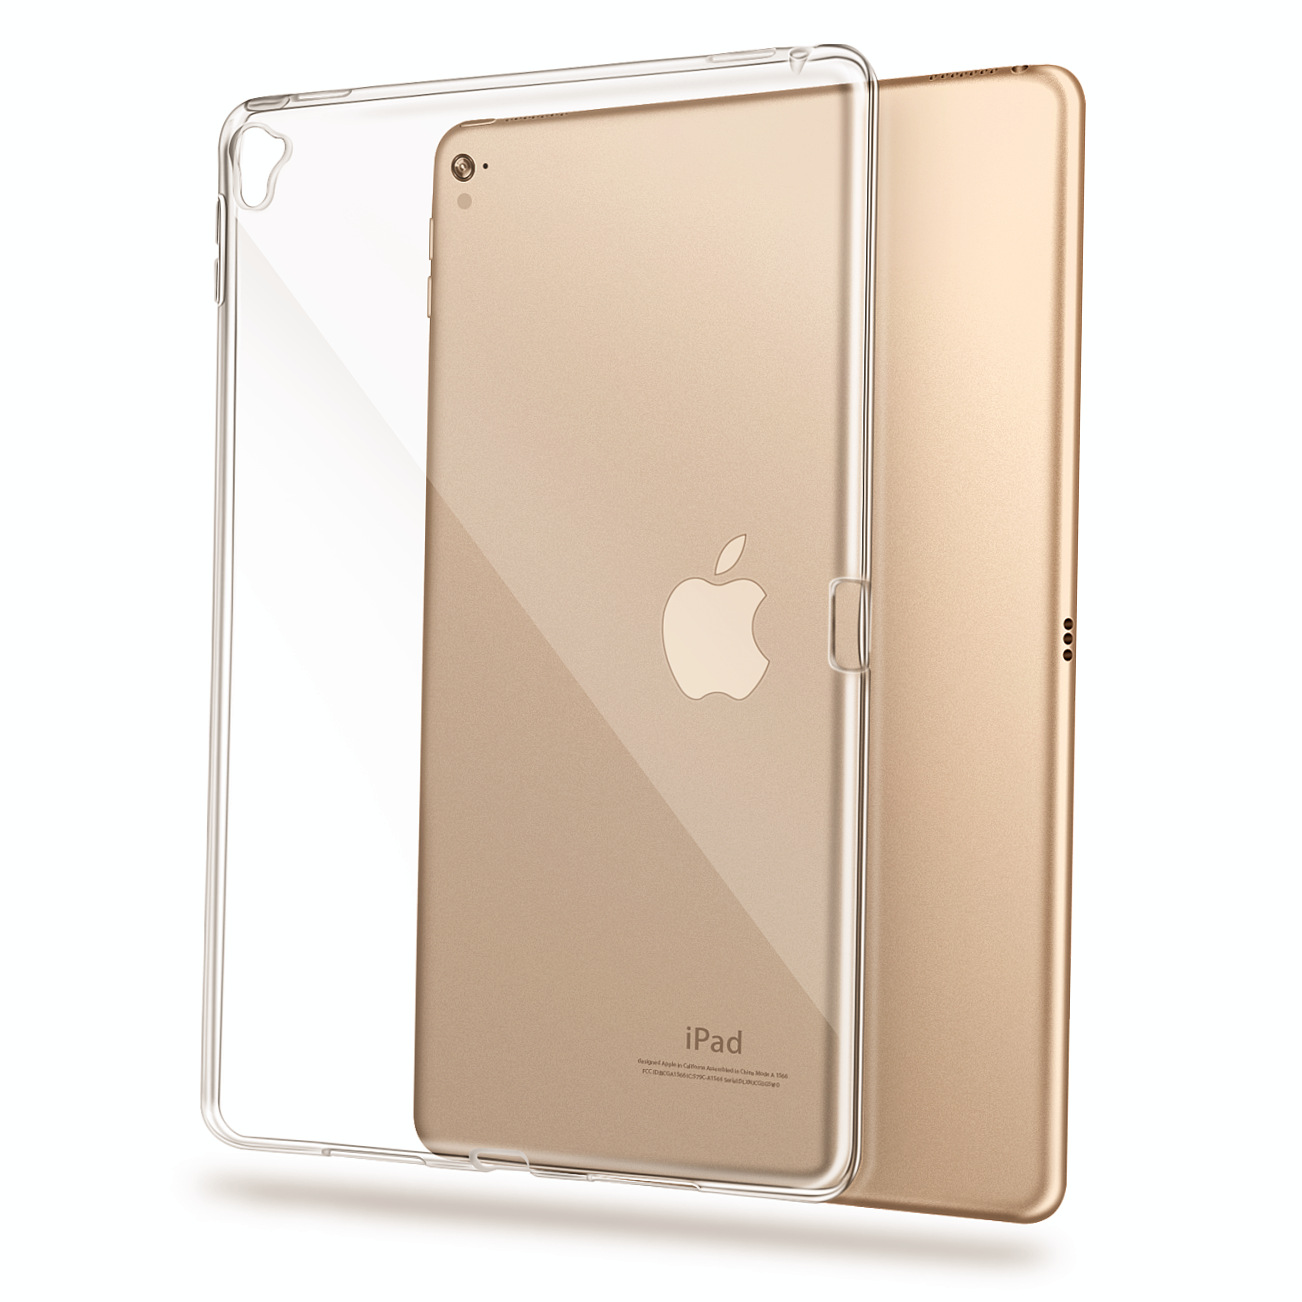 For Apple iPad Pro 9.7'' 10.5'' 11'' 12.9'' ipad mini Air 1 2 3 4 inch Transparent Bumper Case Soft TPU Ultra Slim Clear Cover Shockproof ON SALE 0